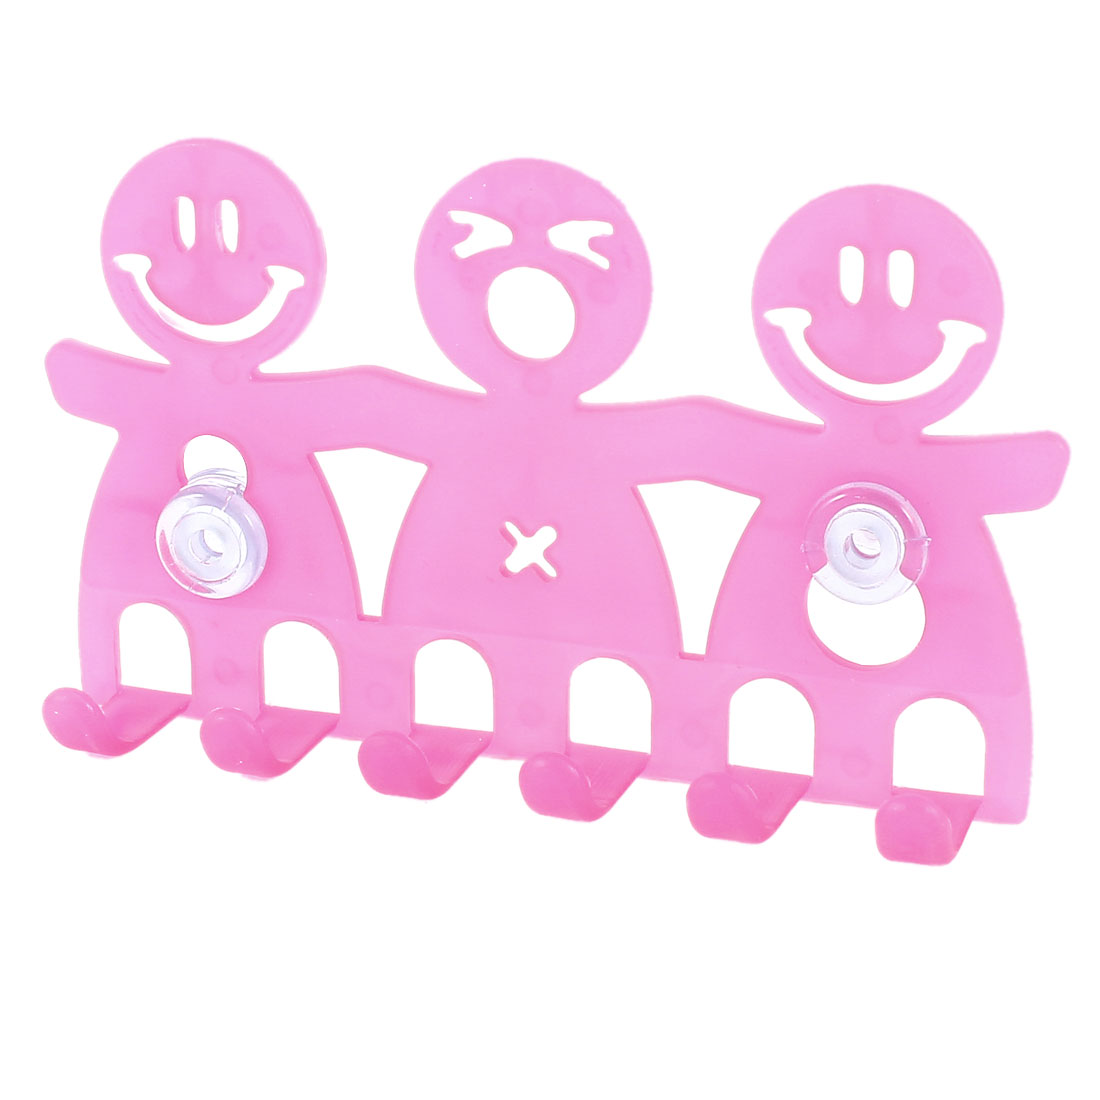 Fuchsia Hard Plastic Human Shaped Bathroom Suction Cup Toothbrush Holder